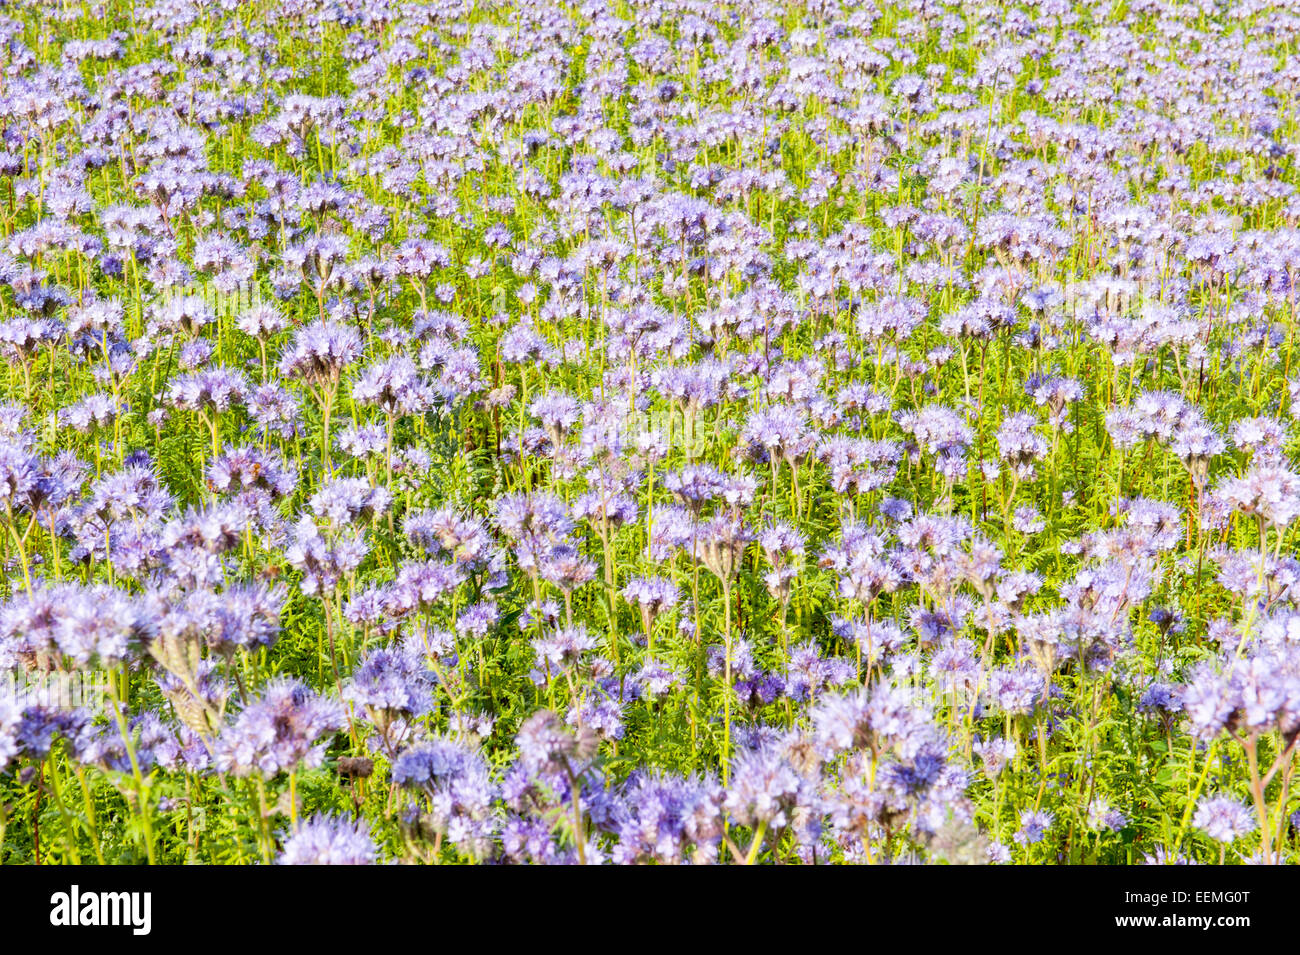 Field of purple wildflowers in green flowerbed for honey bees - Stock Image